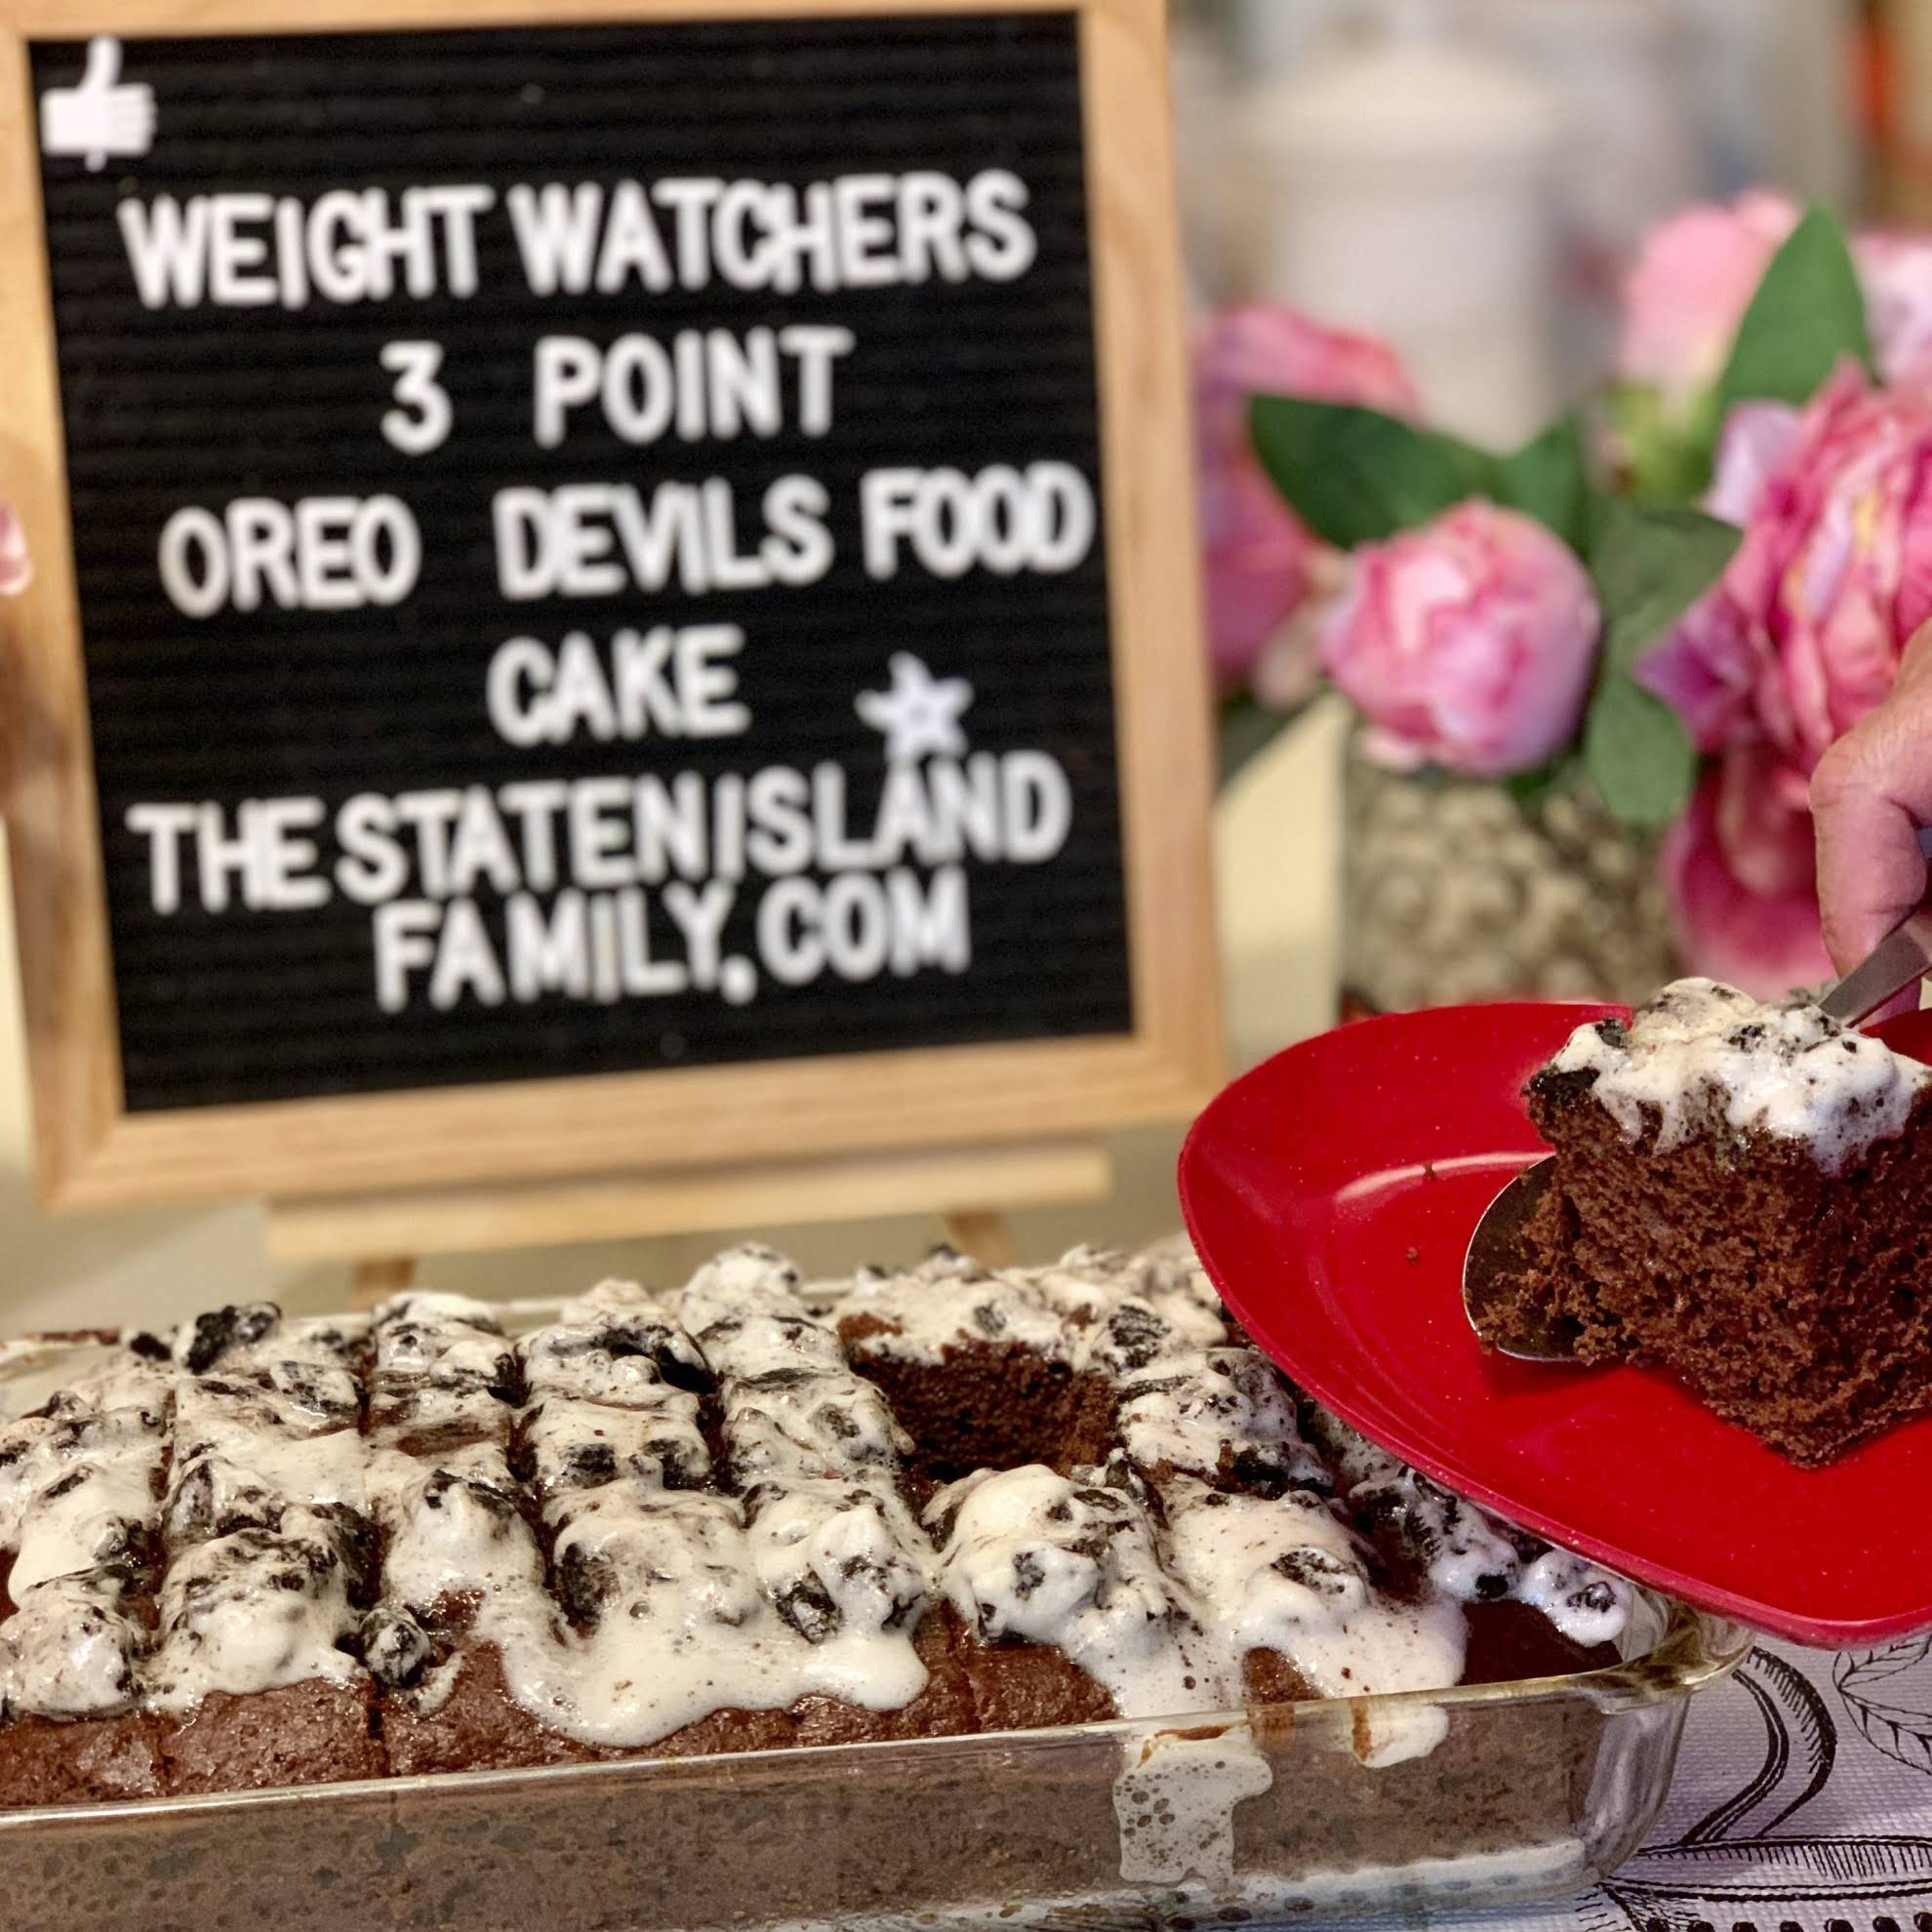 Swell Weight Watchers Cake Recipes Yummly Funny Birthday Cards Online Overcheapnameinfo